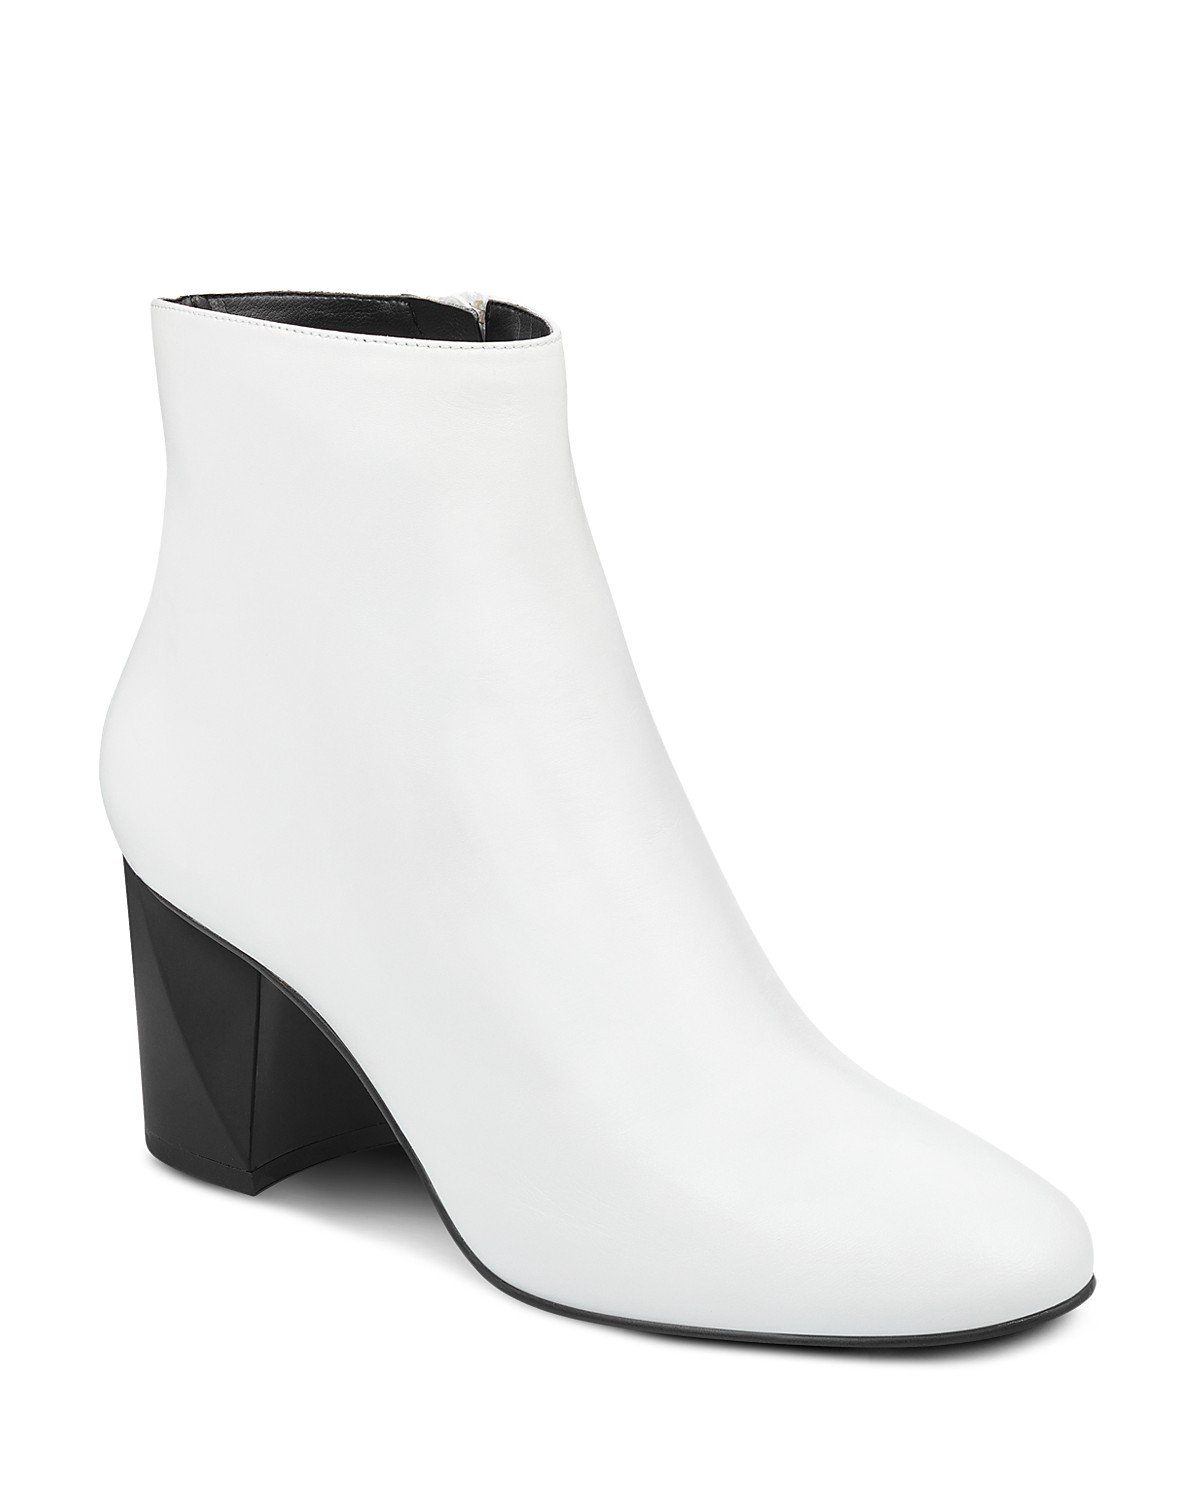 Kendall And Kylie Women's Hadlee Leather Block Heel Booties - 100% Exclusive DePO5XNeHM